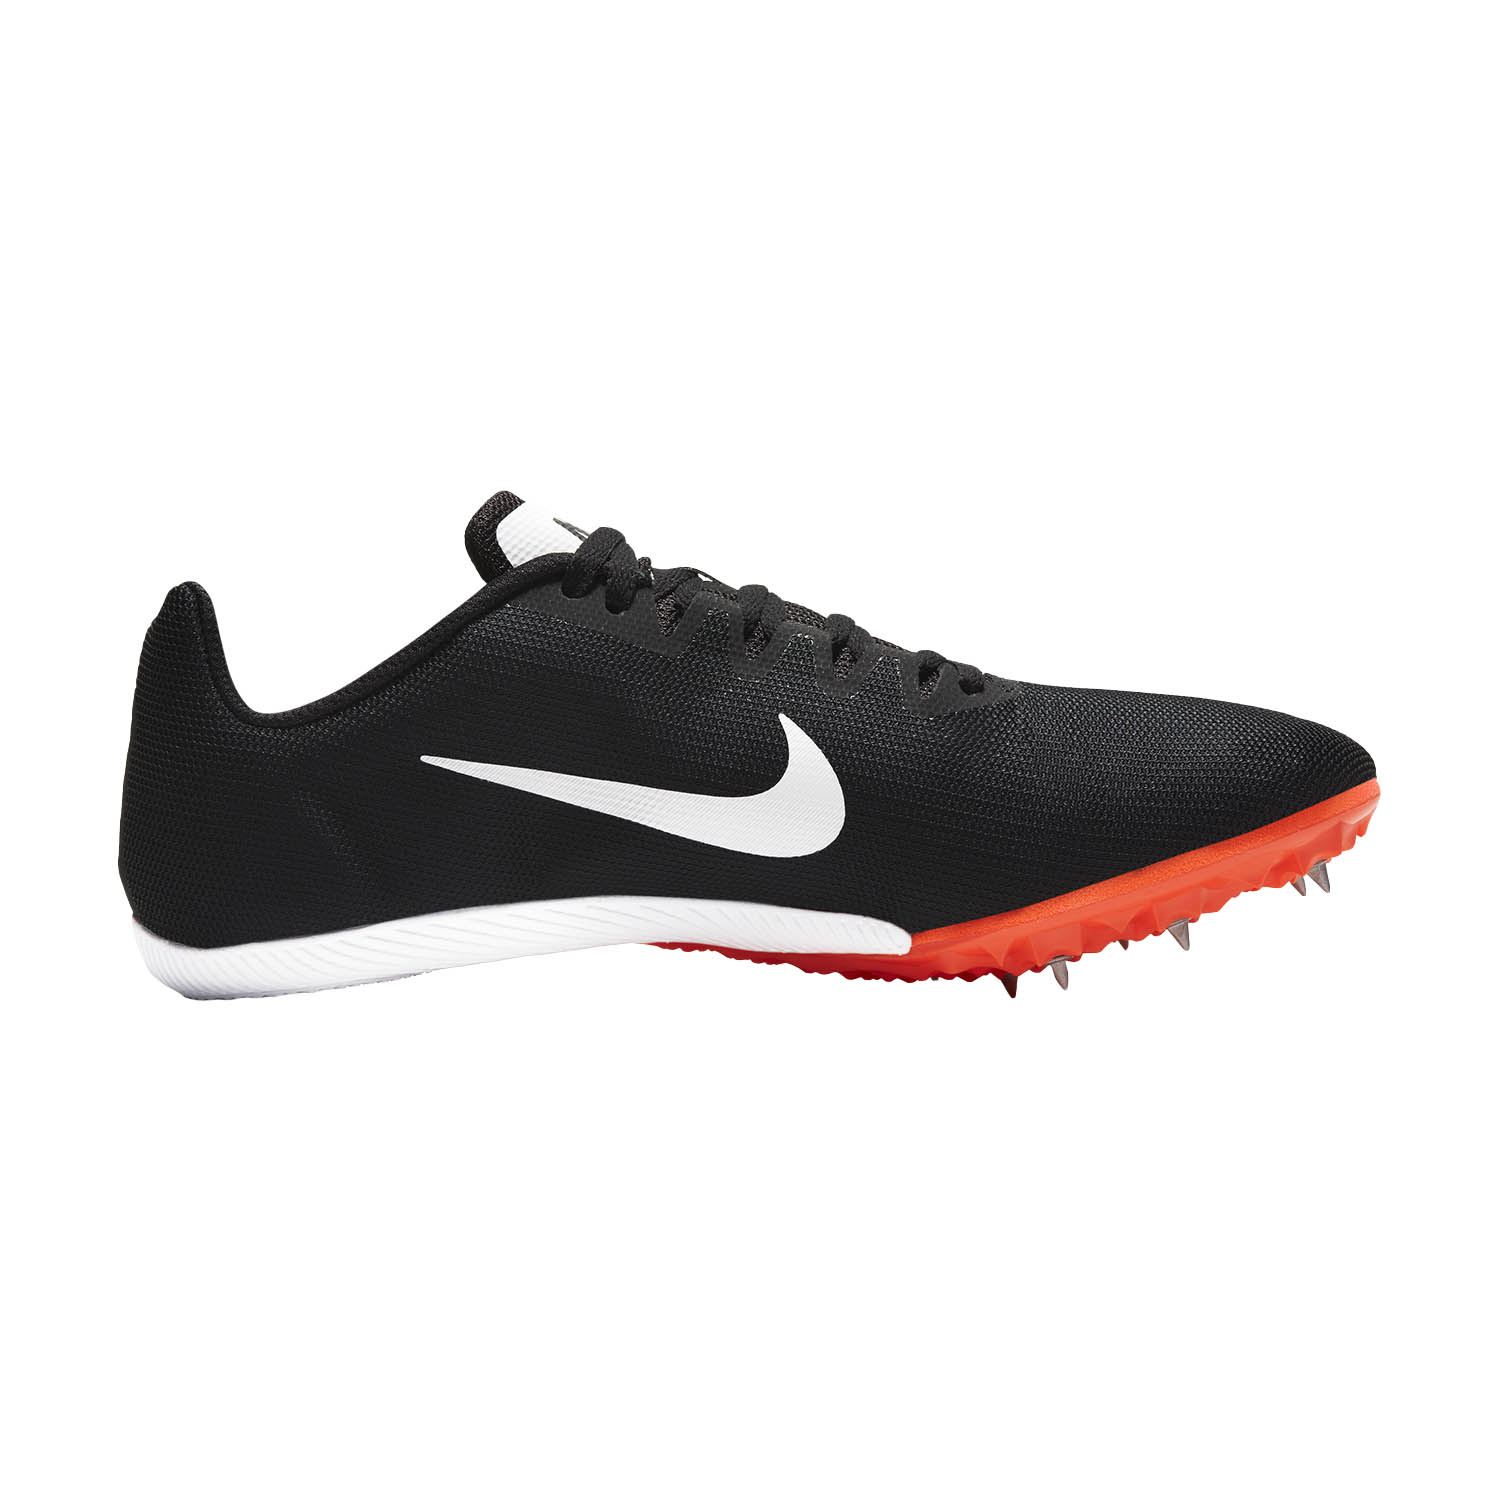 Nike Zoom Rival M9 - Black/White/Iron Grey/Hyper Crimson